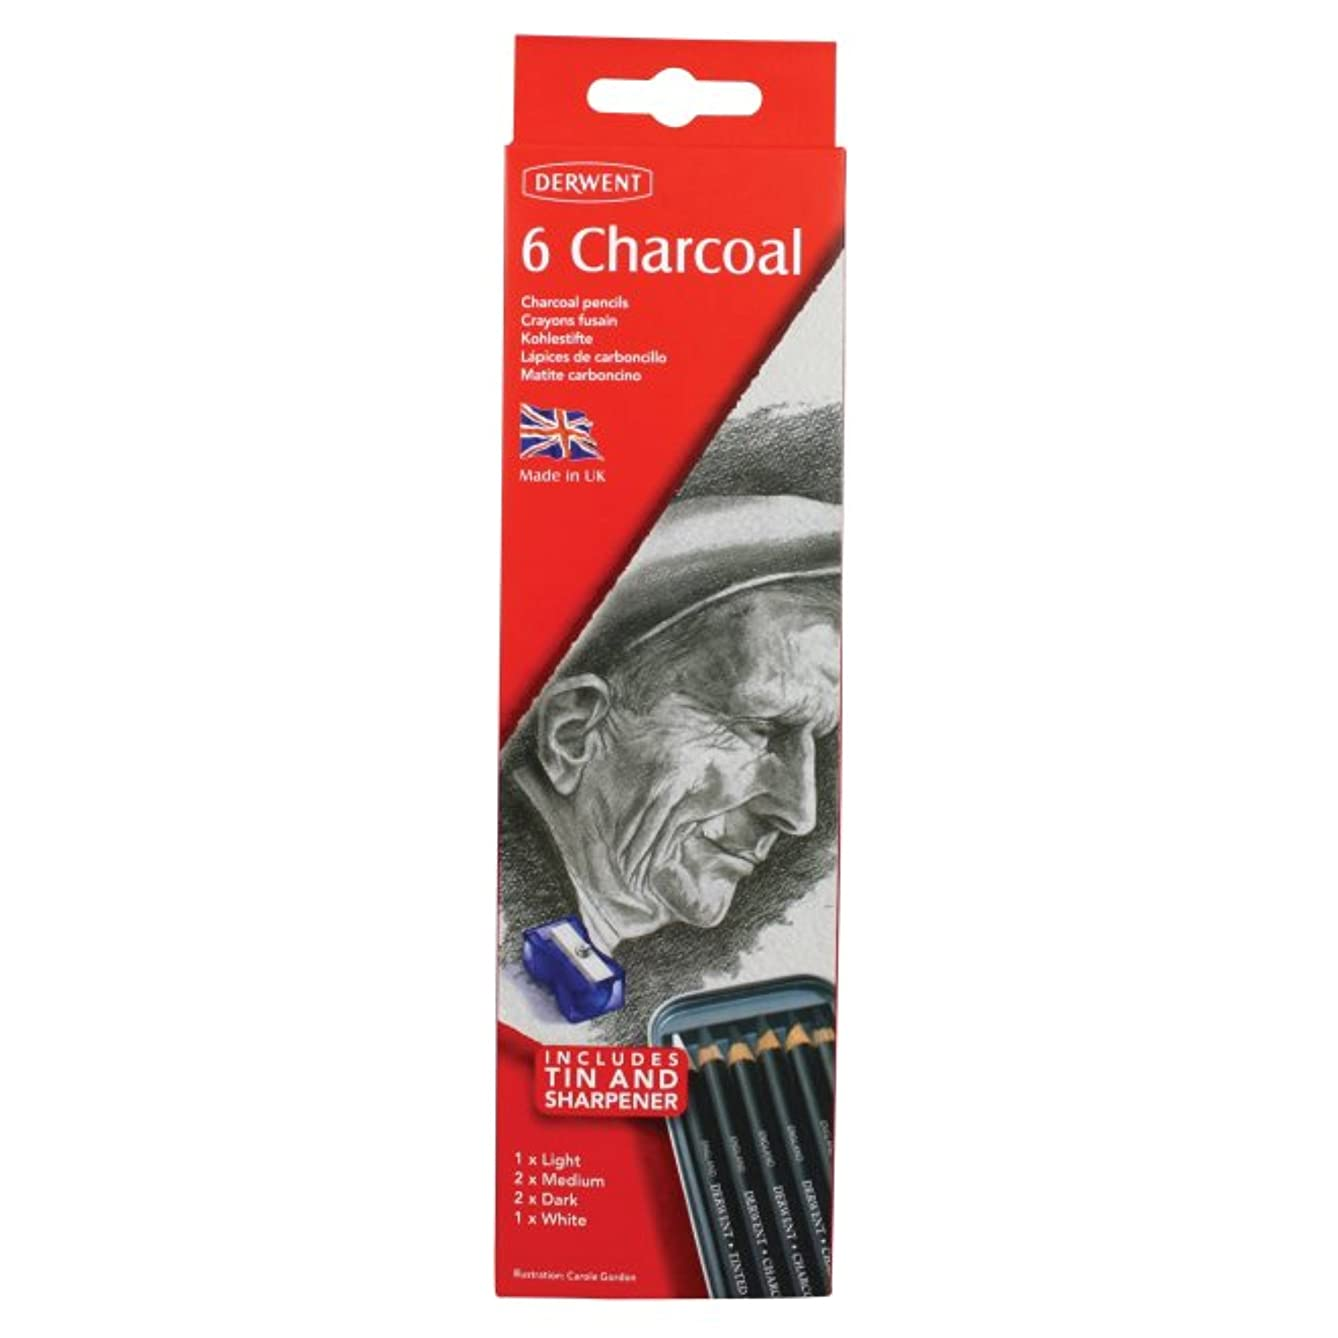 Derwent Charcoal Pencils, Metal Tin, 6 Count (0700838)